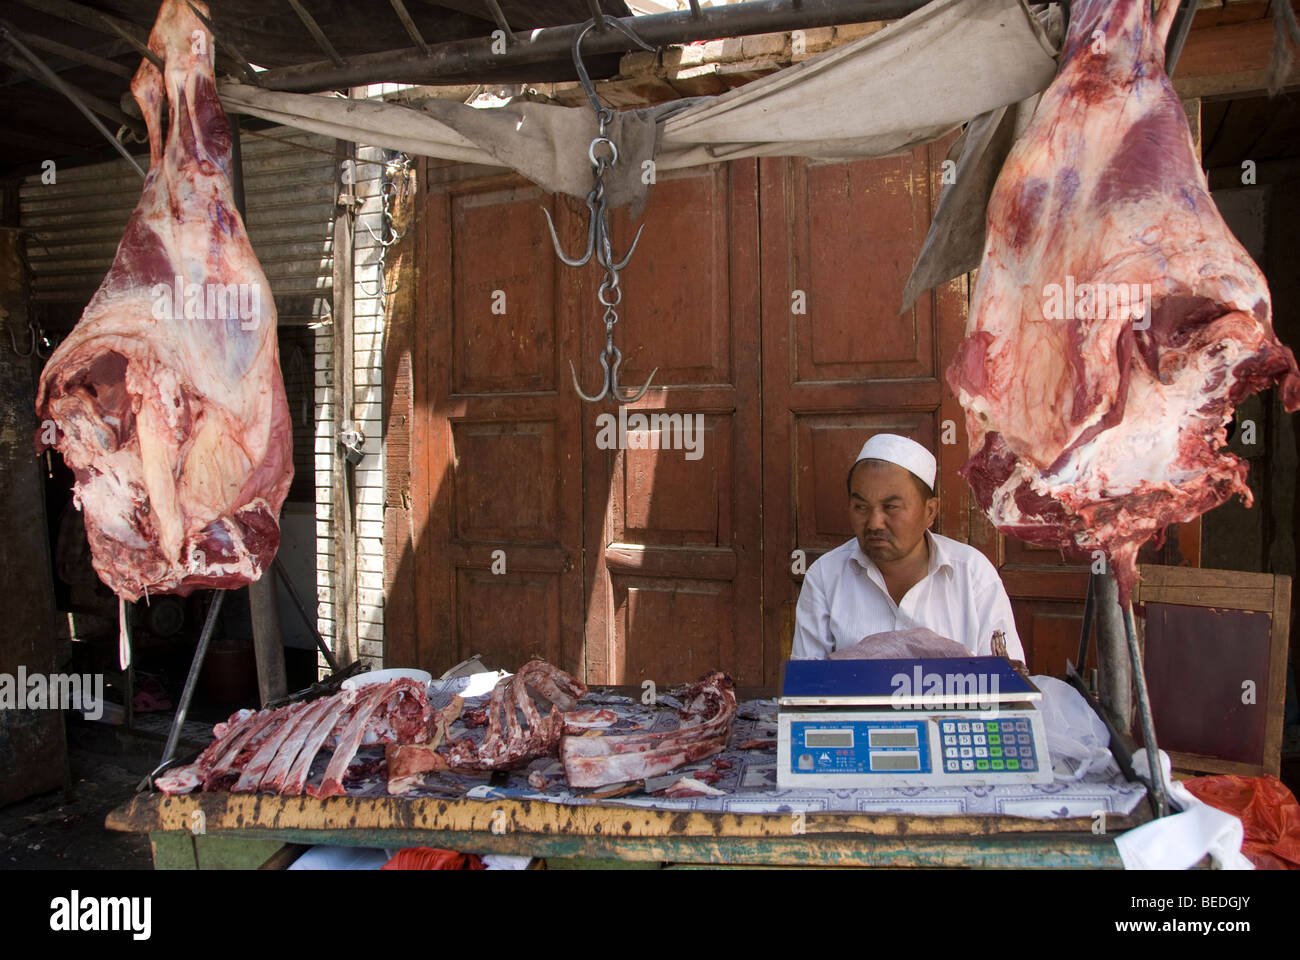 Local Butcher selling meat in the middle of a market in Kashgar, Xinjiang Province, China 2008 - Stock Image